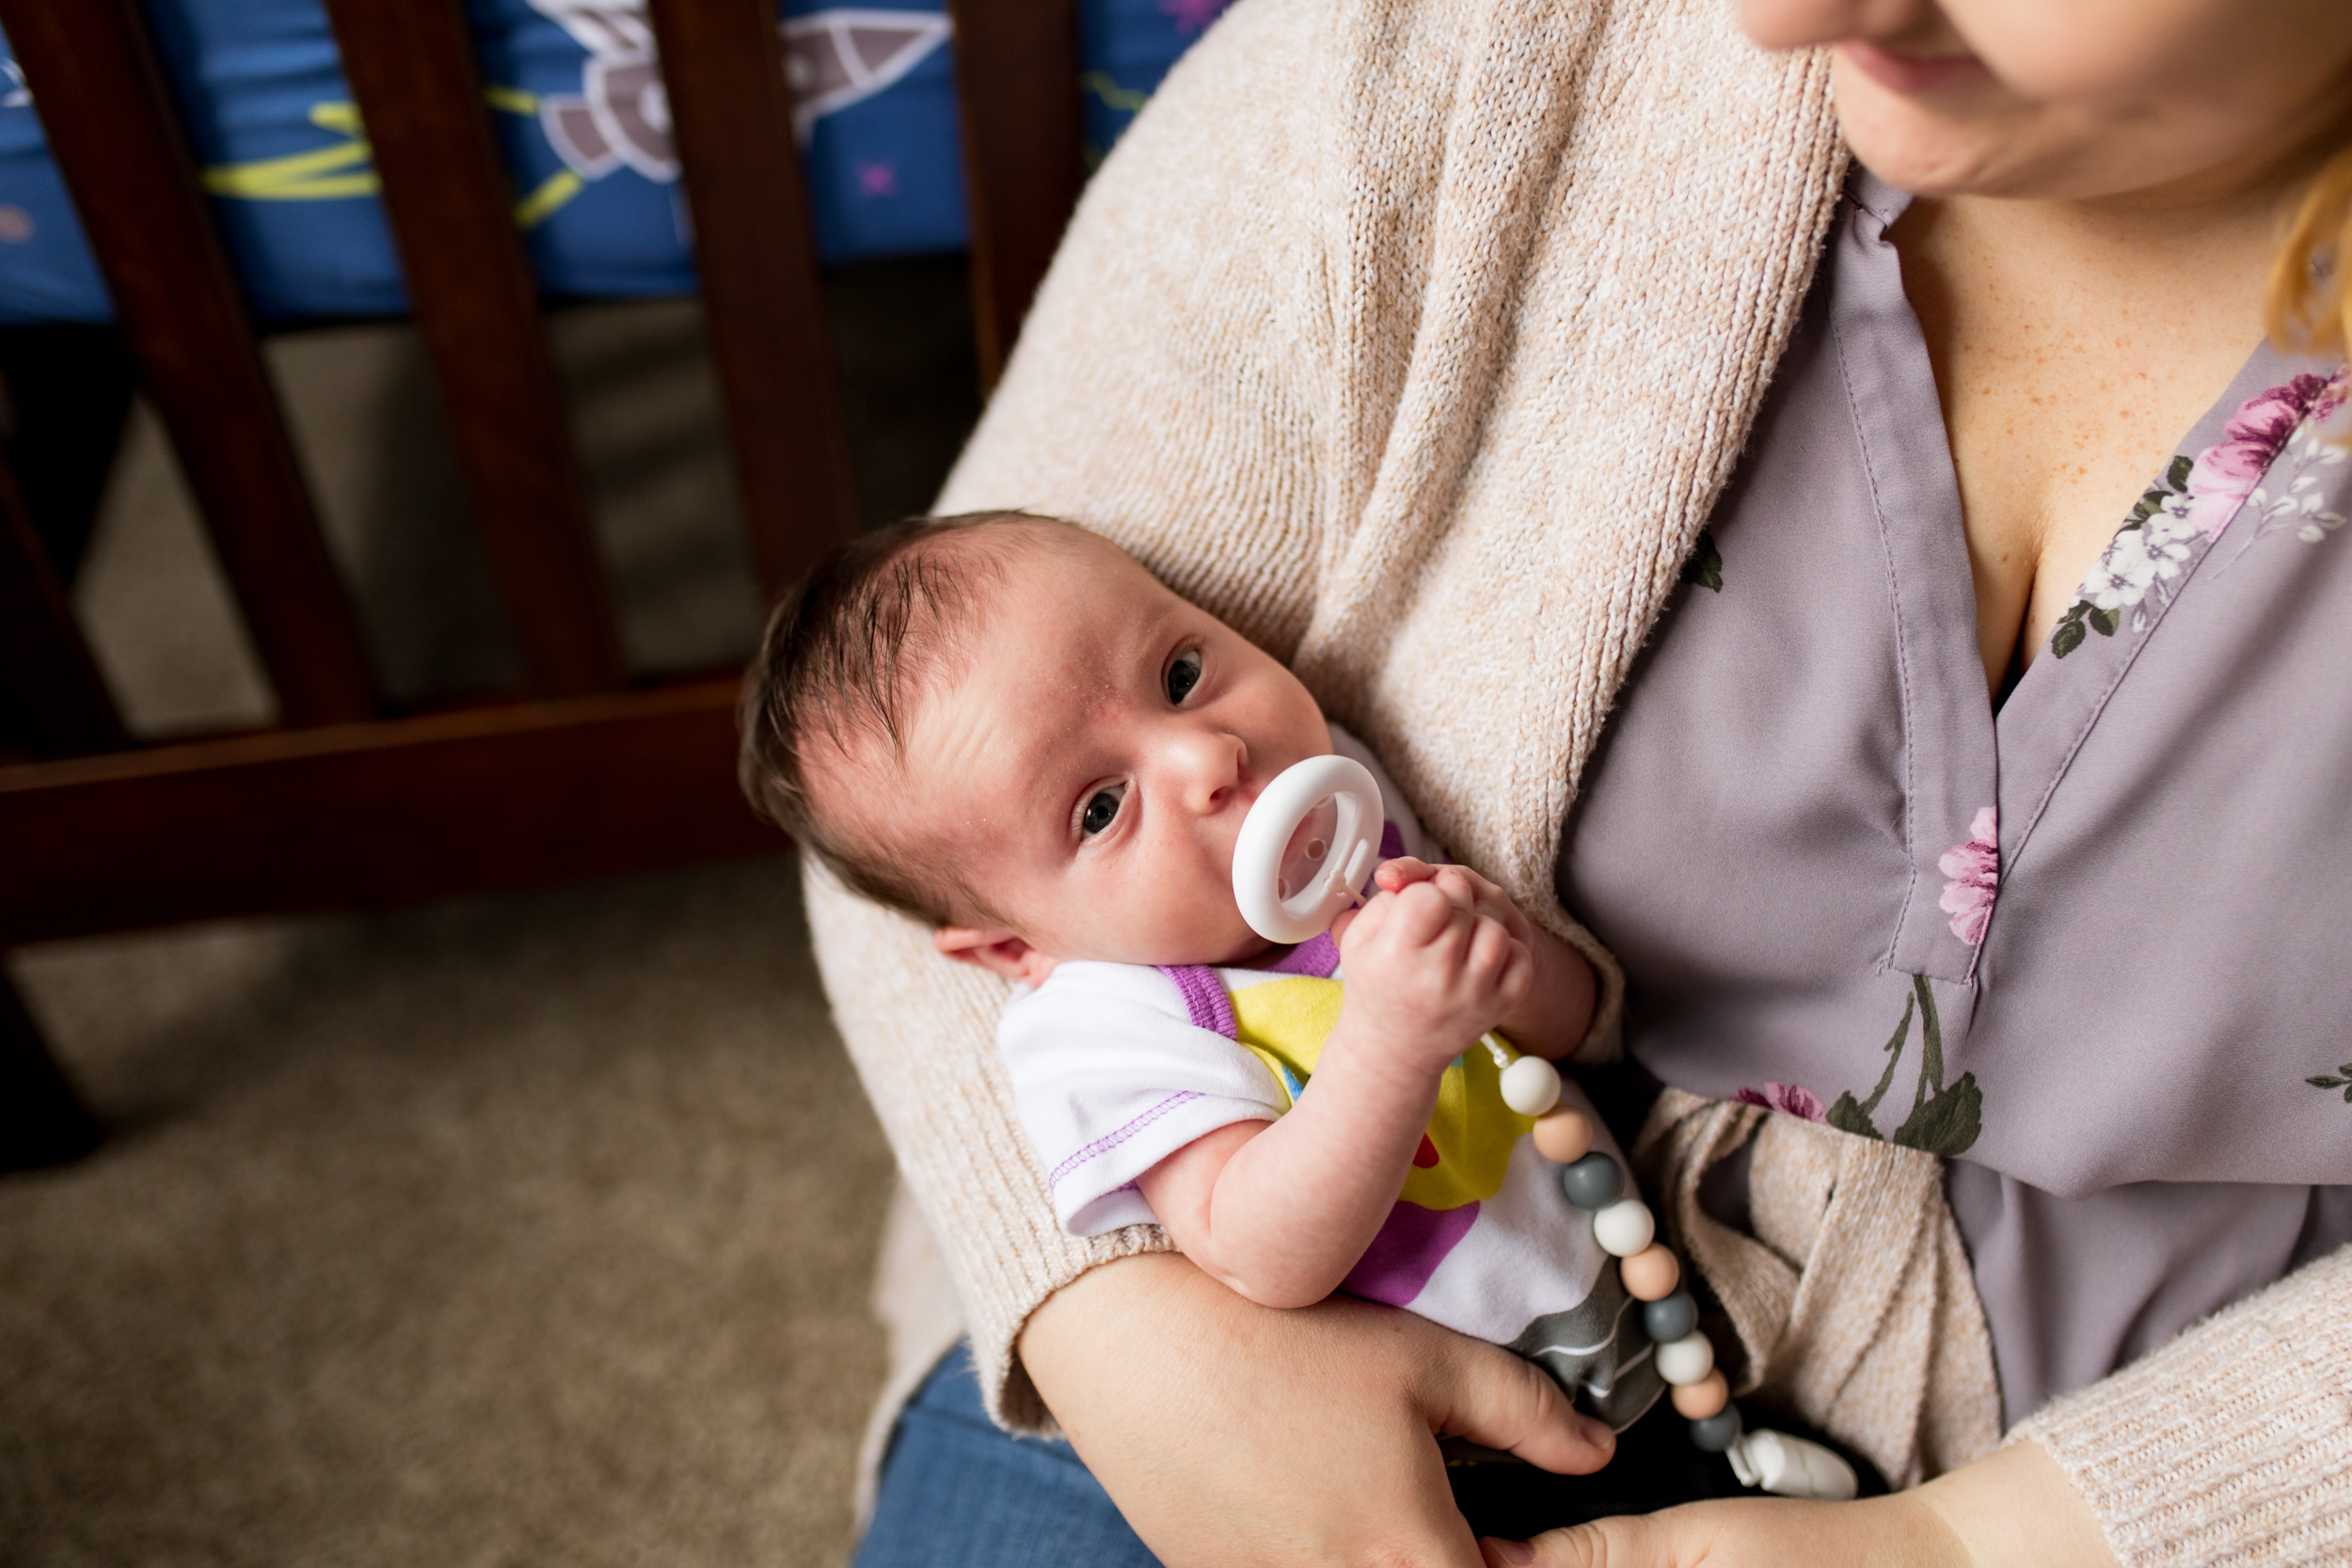 mom and dad hold newborn baby in Toy Story-themed nursery